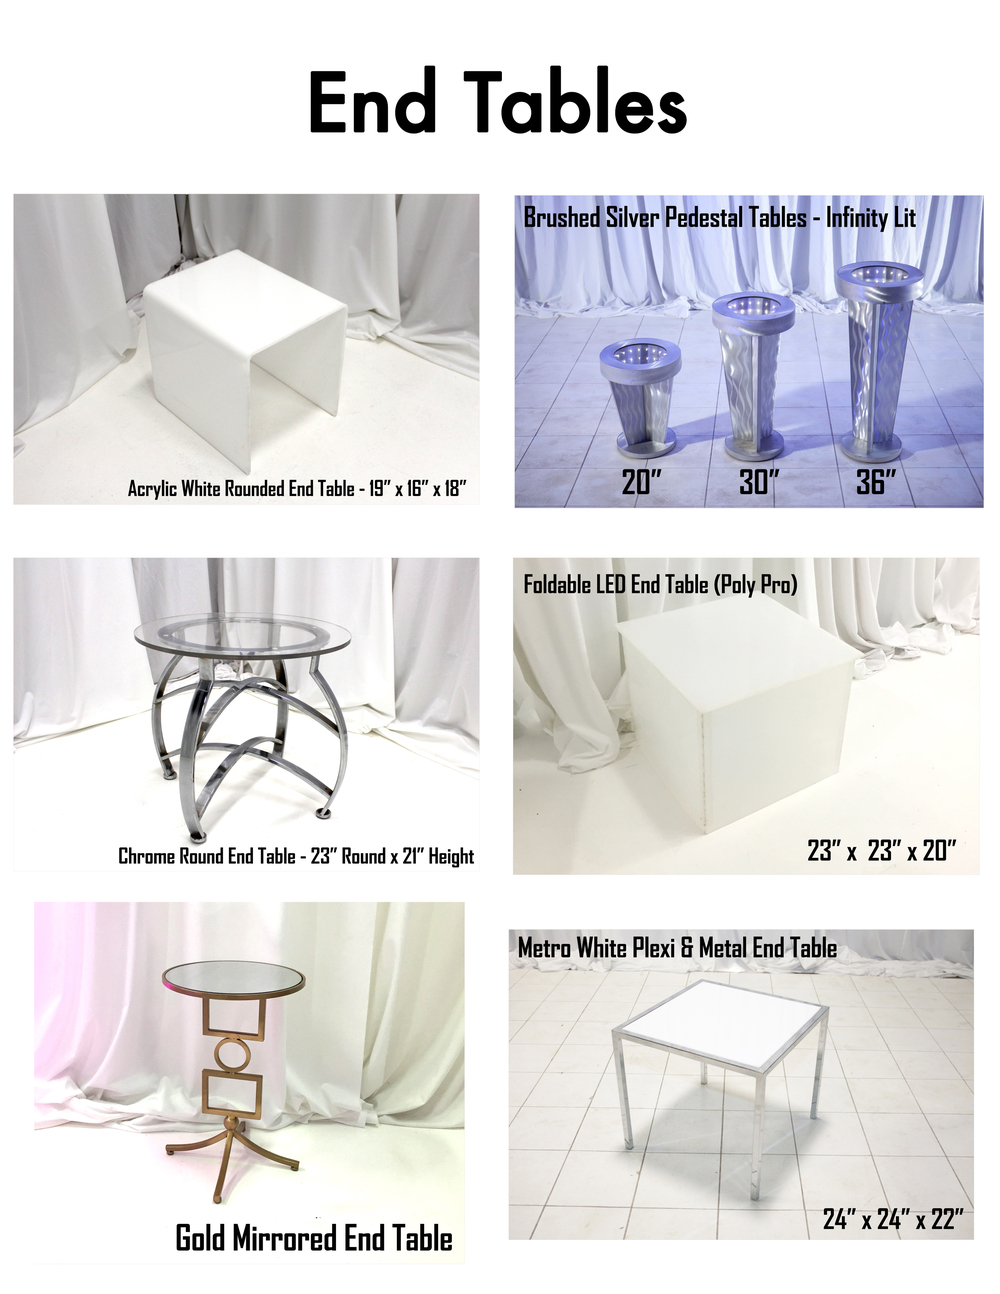 P47_End Tables.jpg